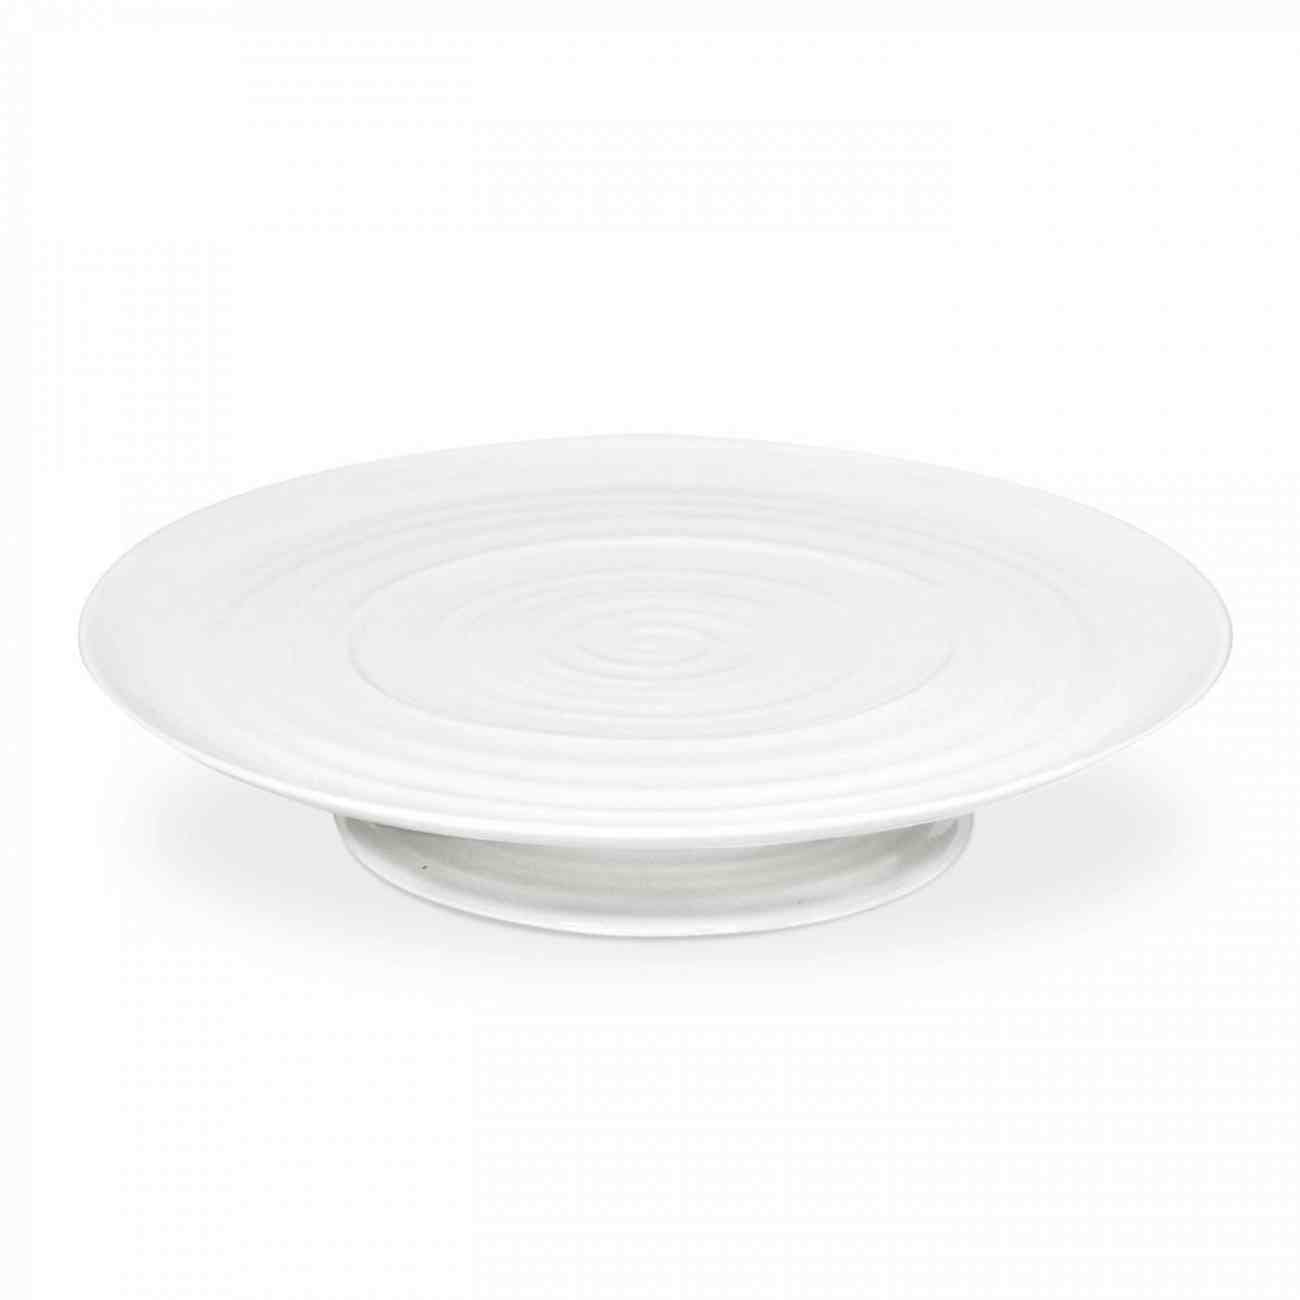 """SOPHIE CONRAN CAKE PLATE FOOTED 32 x 6cm/12.75"""" x 2.5"""" CPW76840-X"""